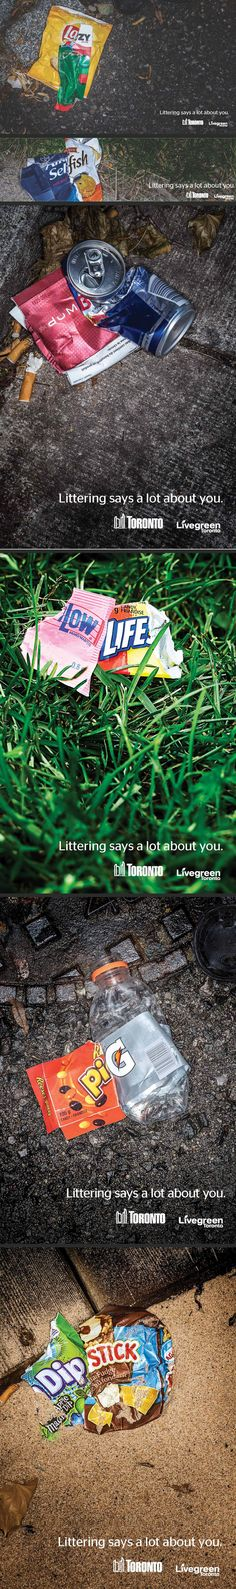 Littering says a lot about you. #funny